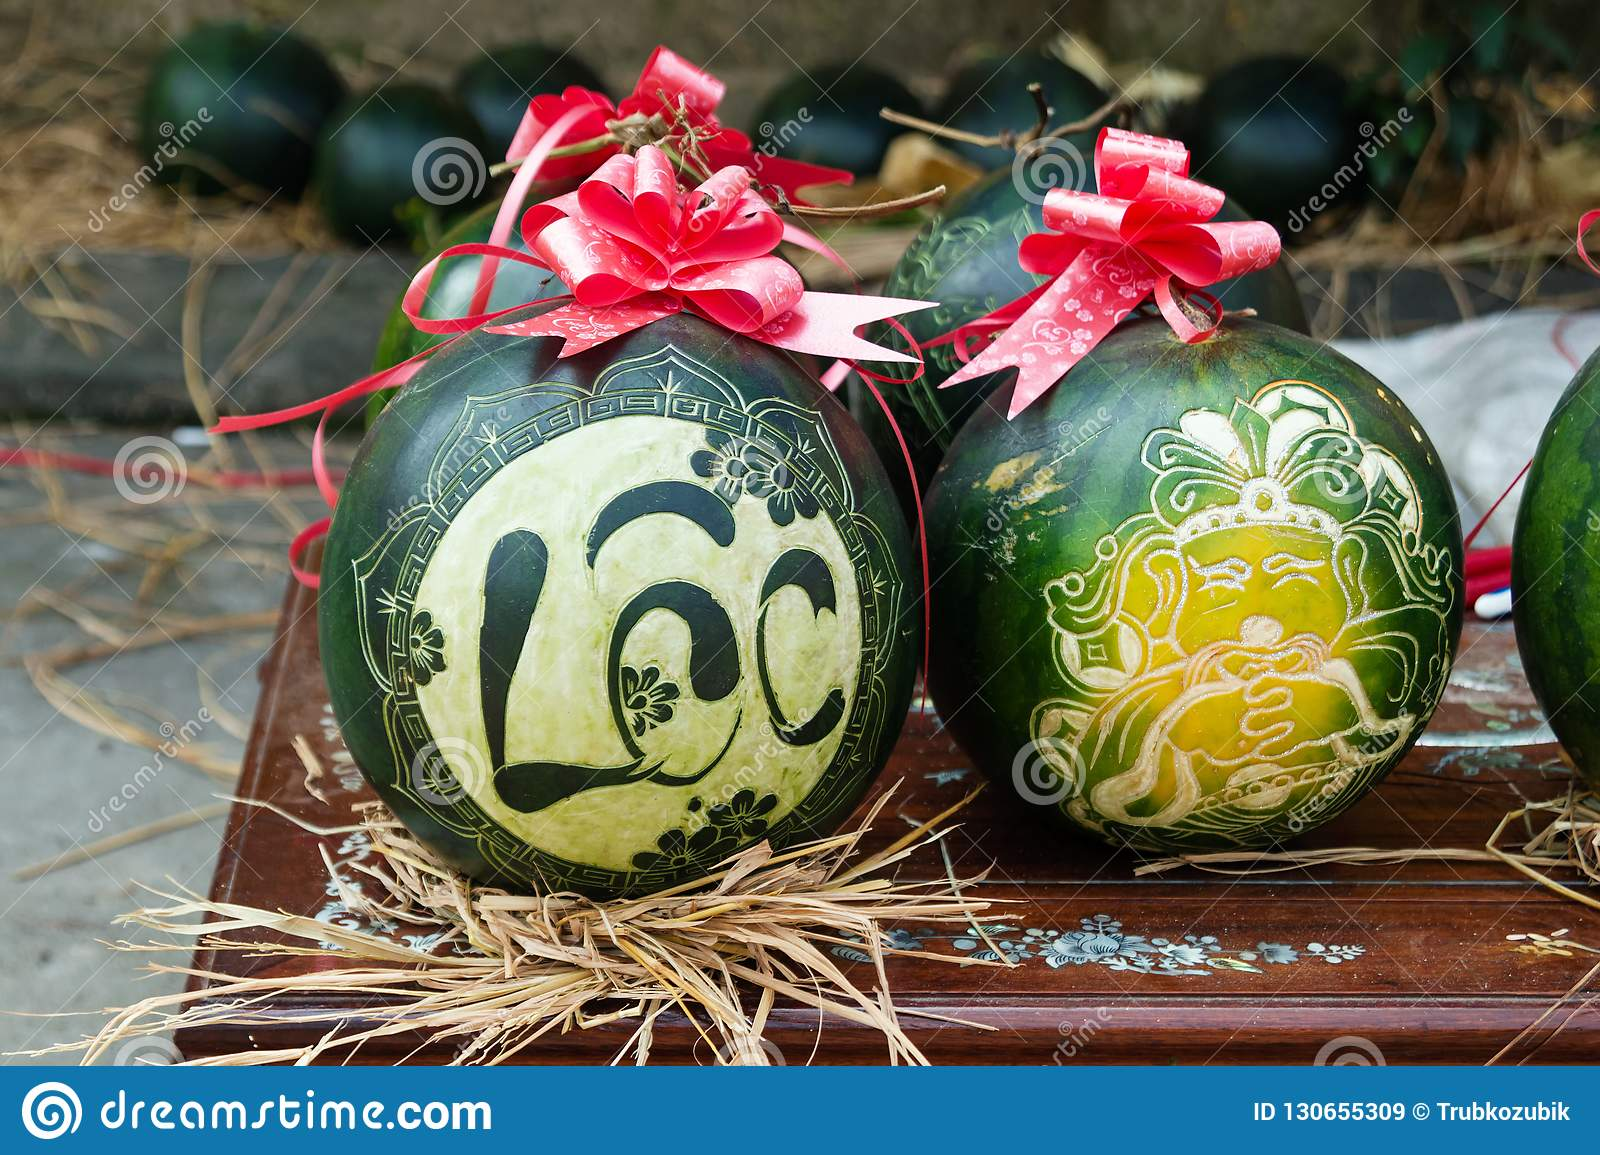 Watermelons with festive engraving on Eve of Vietnamese New Year. The inscription is translated - Clarify. Hue, Vietnam